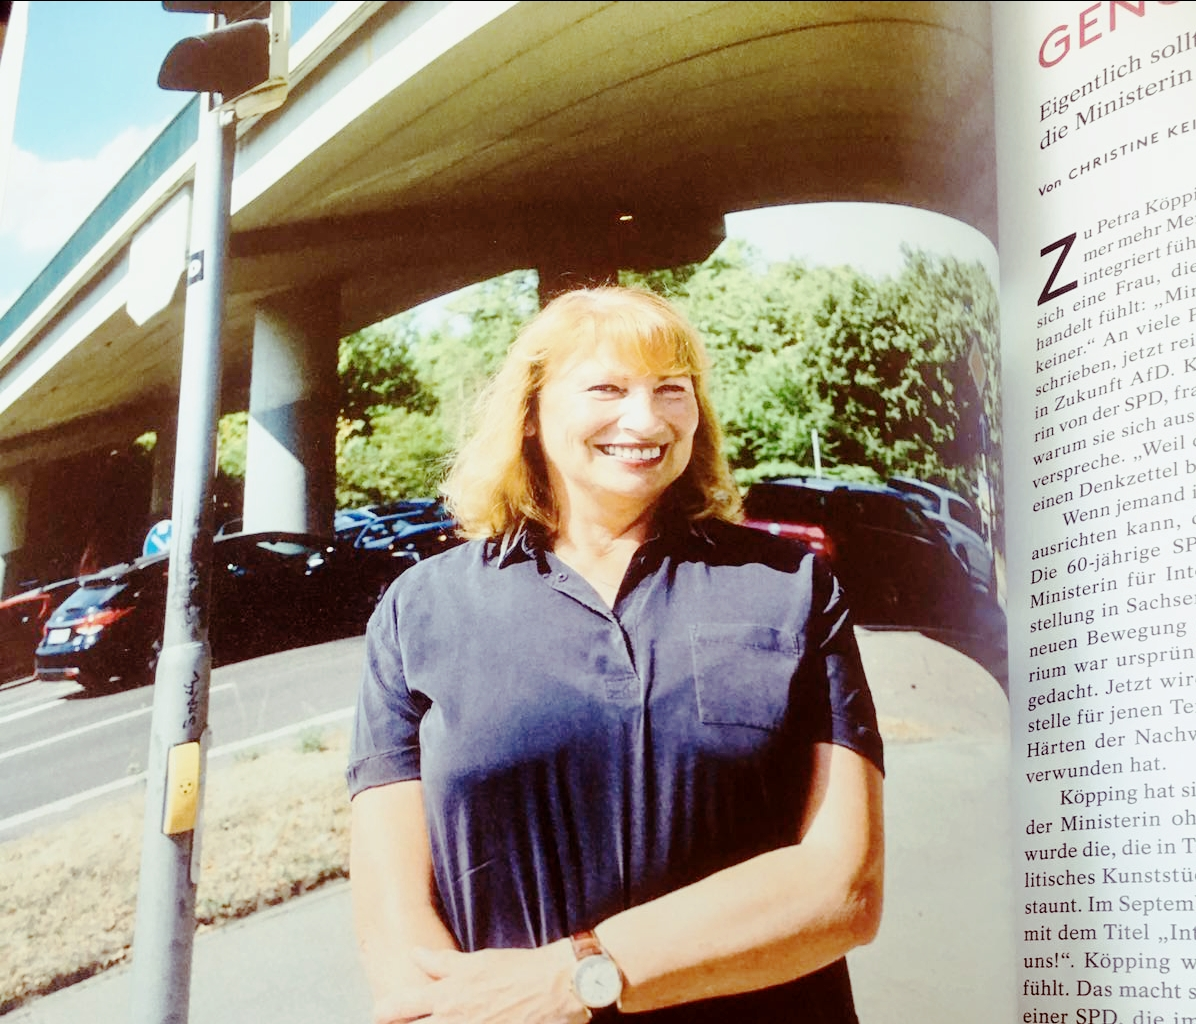 As minister for gender equality and integration in the East German Boomstate of Saxony, Petra Köpping was involved with the integration of migrants into German society.